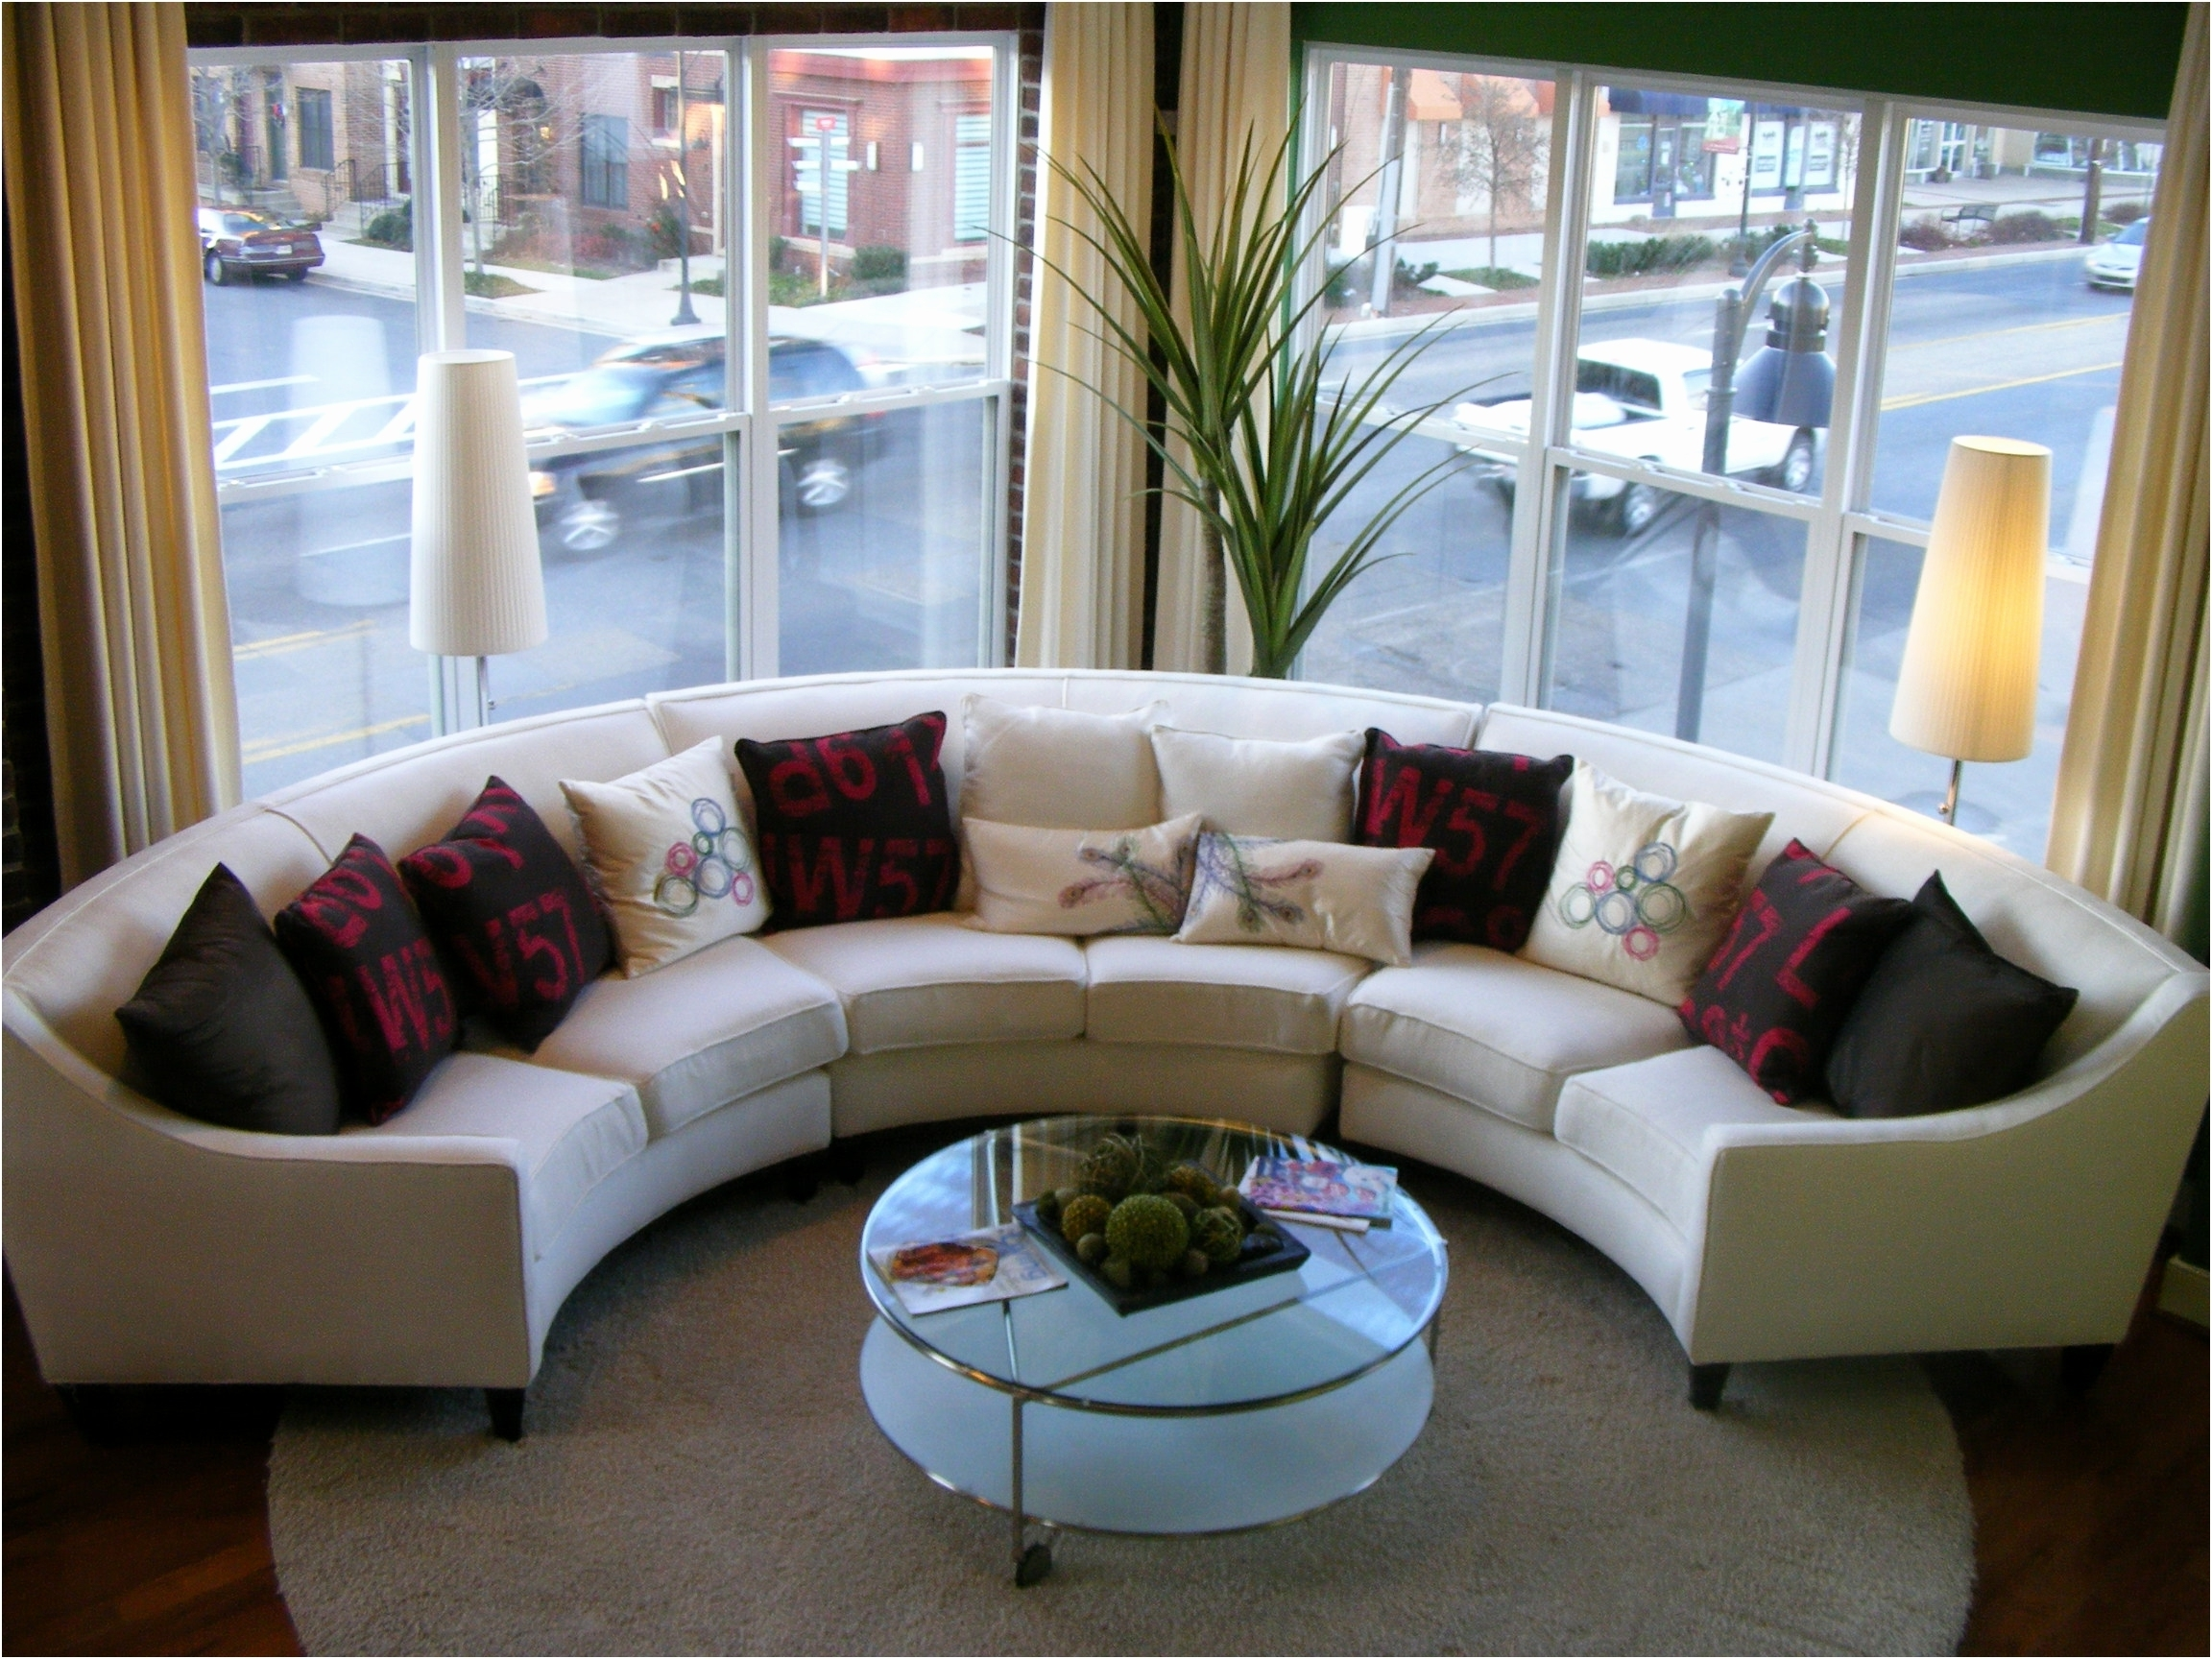 Semicircular Sofas In Famous Sectional Sofa For Sale Luxury Epic Semi Circular Sectional Sofa (View 11 of 20)